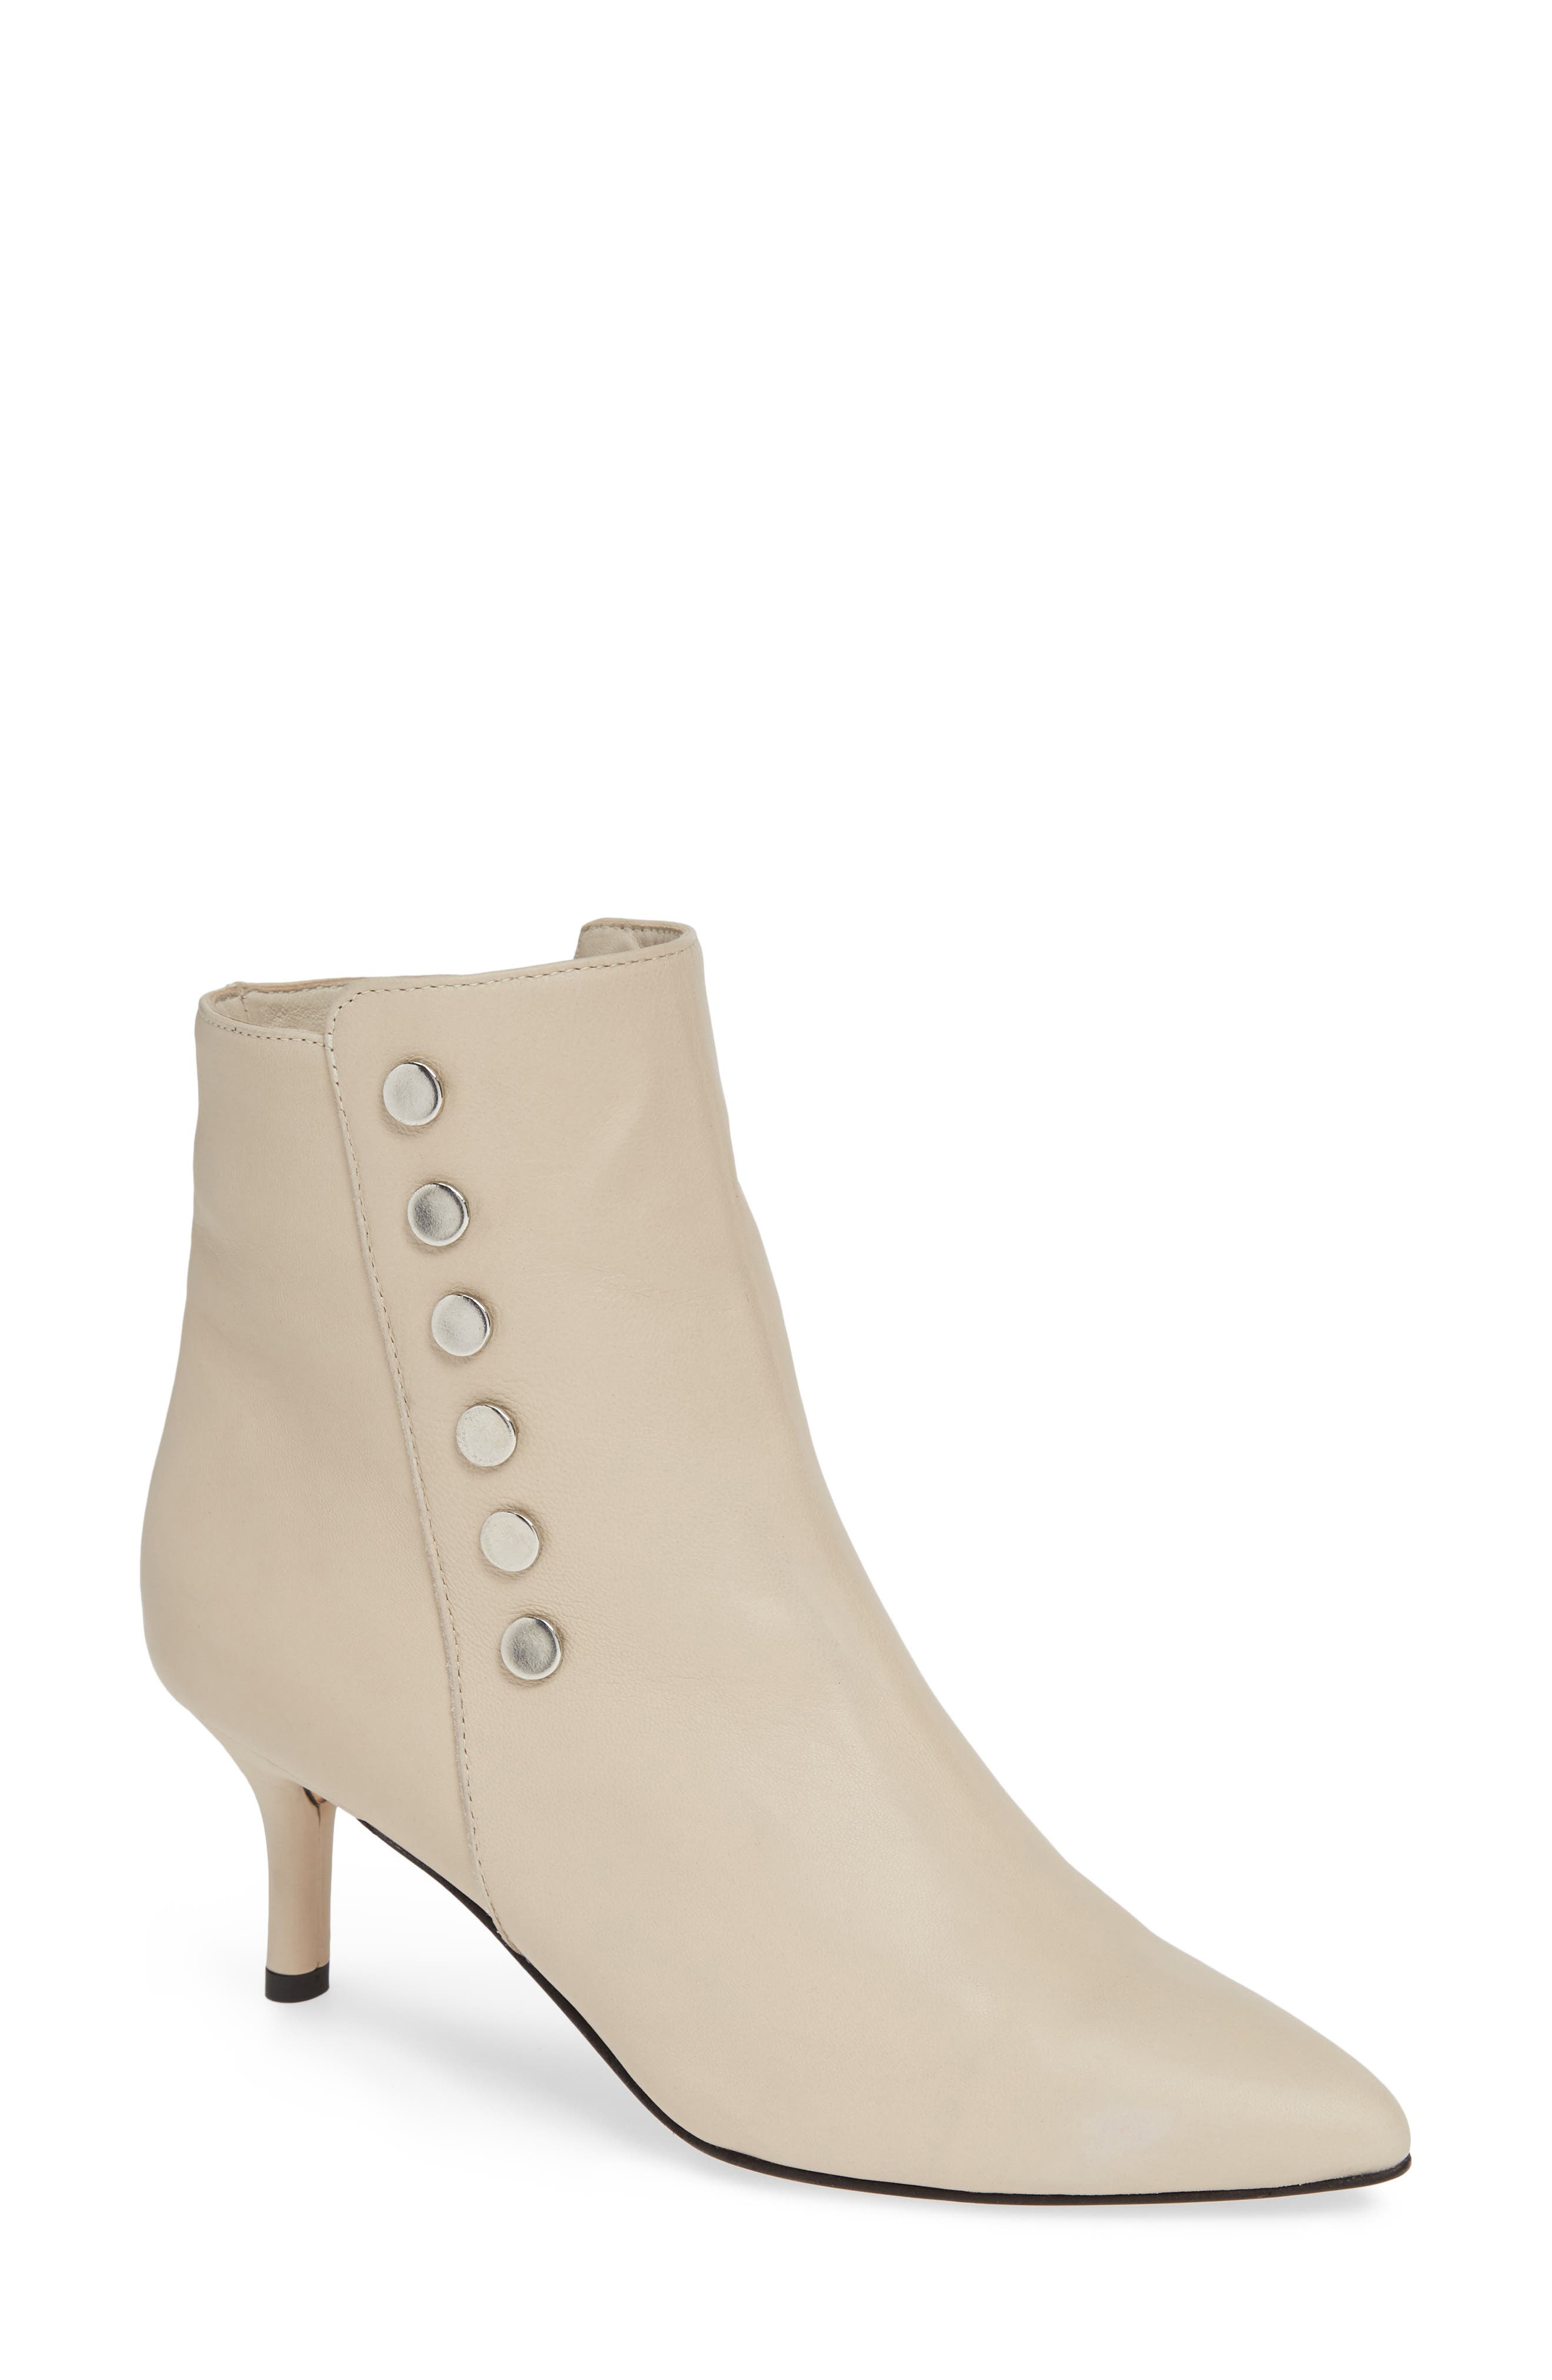 AMALFI BY RANGONI Piccola Bootie in Nude Leather